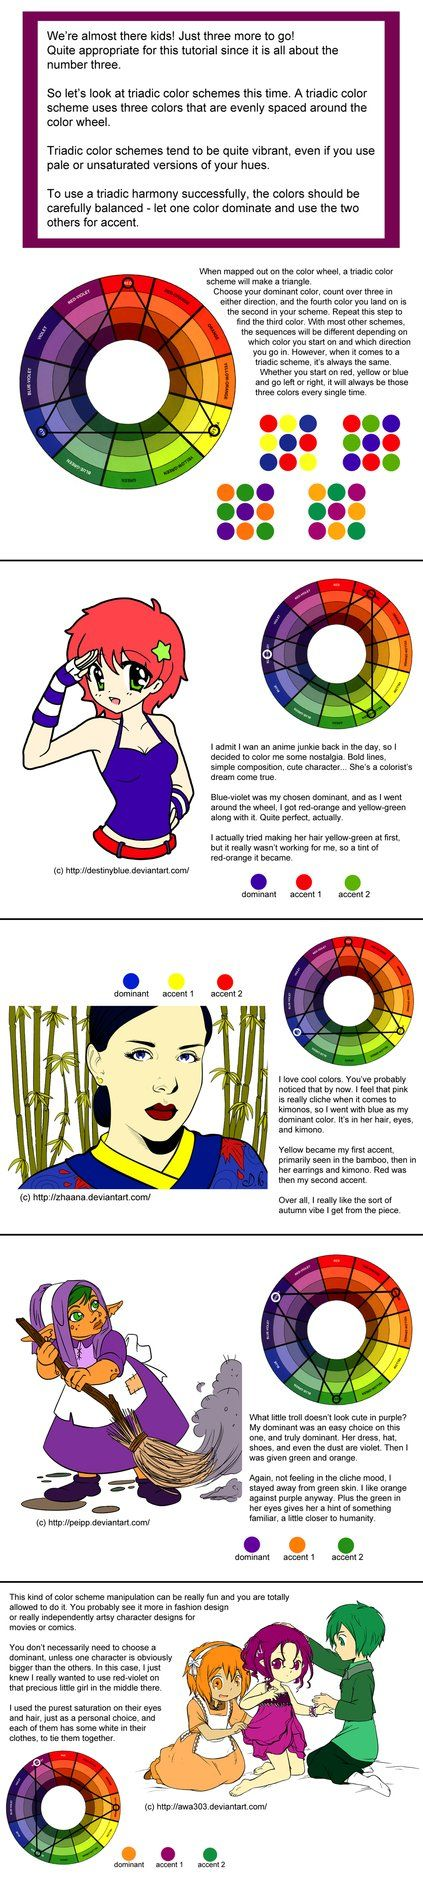 This triadic color design utilizes yellow orange and a dark shade of - 21 Best Triadic Images On Pinterest Colors Colour Wheel And Color Theory